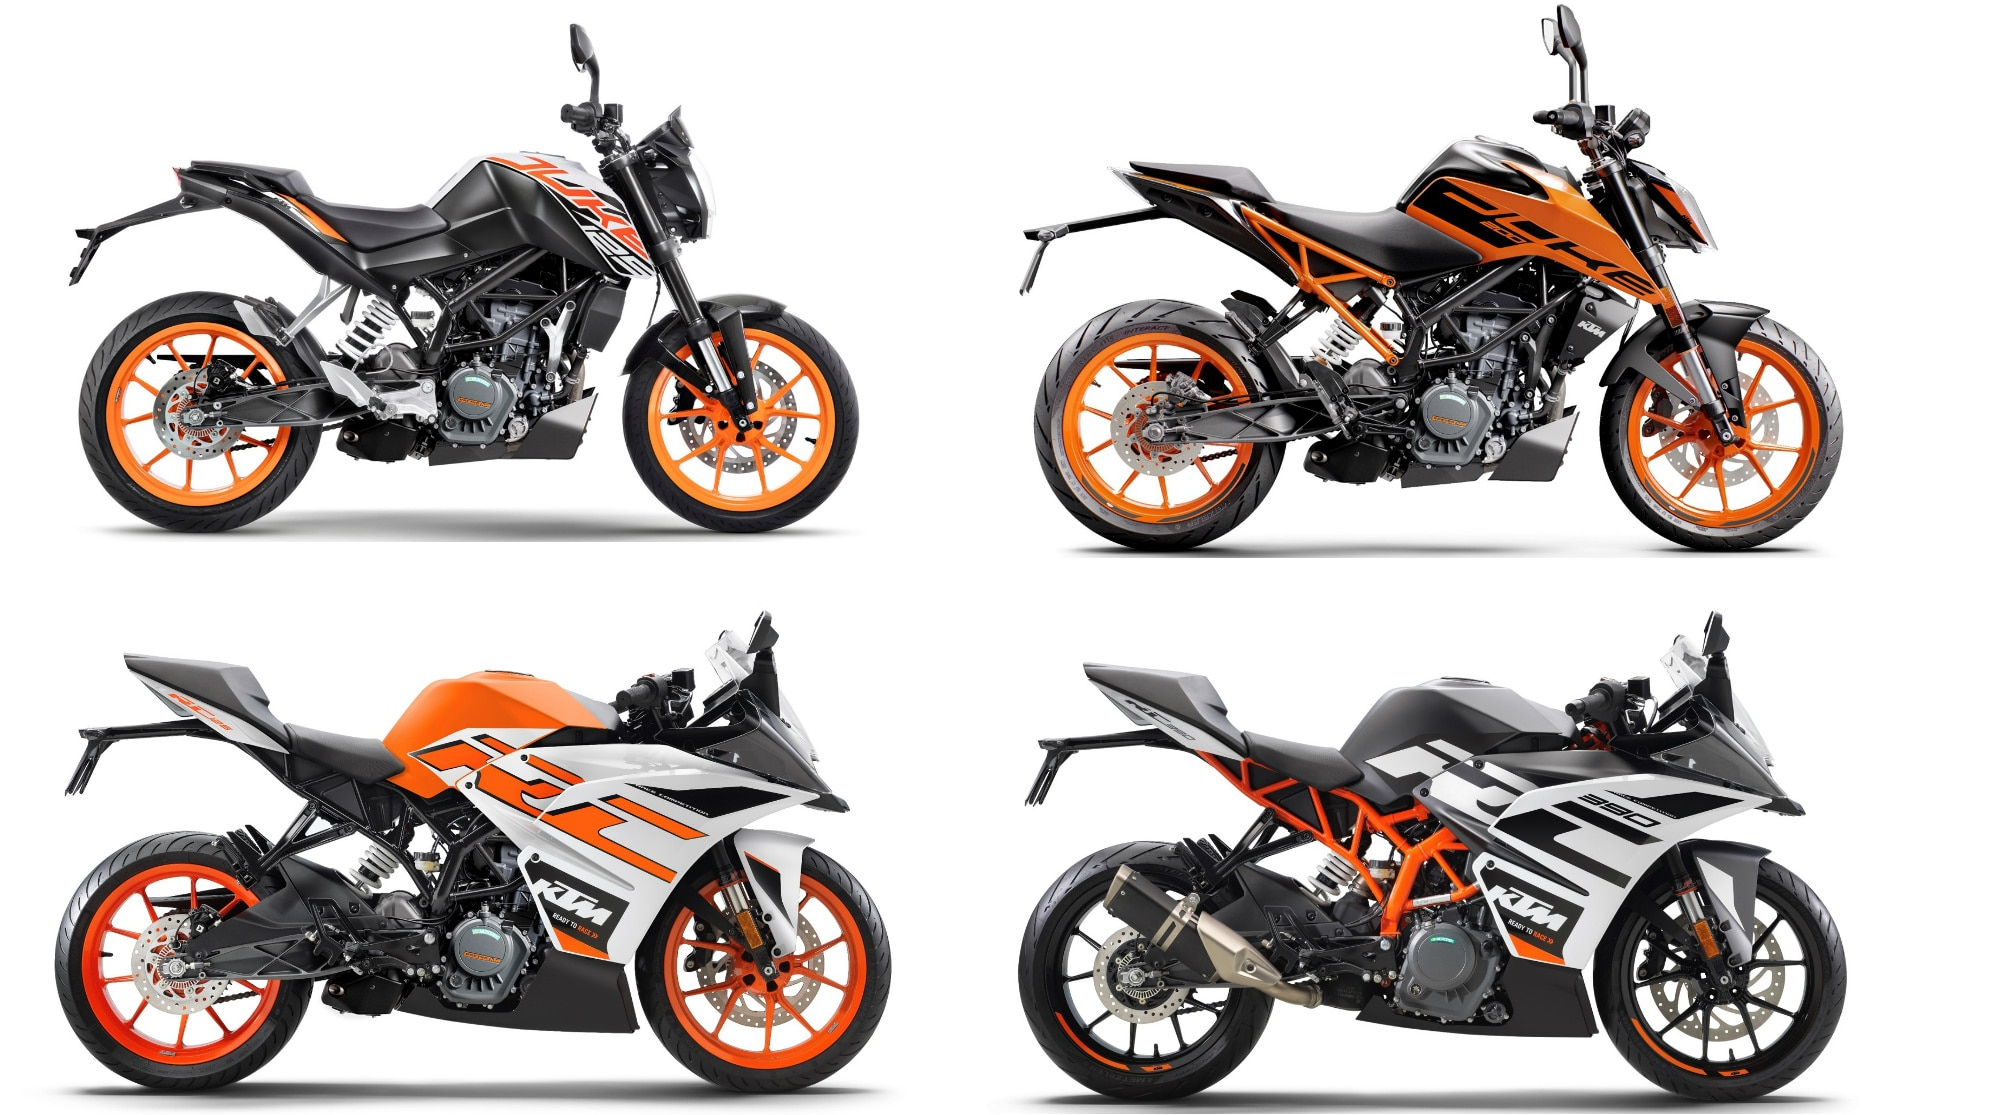 Bs6 Compliant Ktm 125 Duke Rc 125 390 Duke Rc390 And More Launched Zigwheels